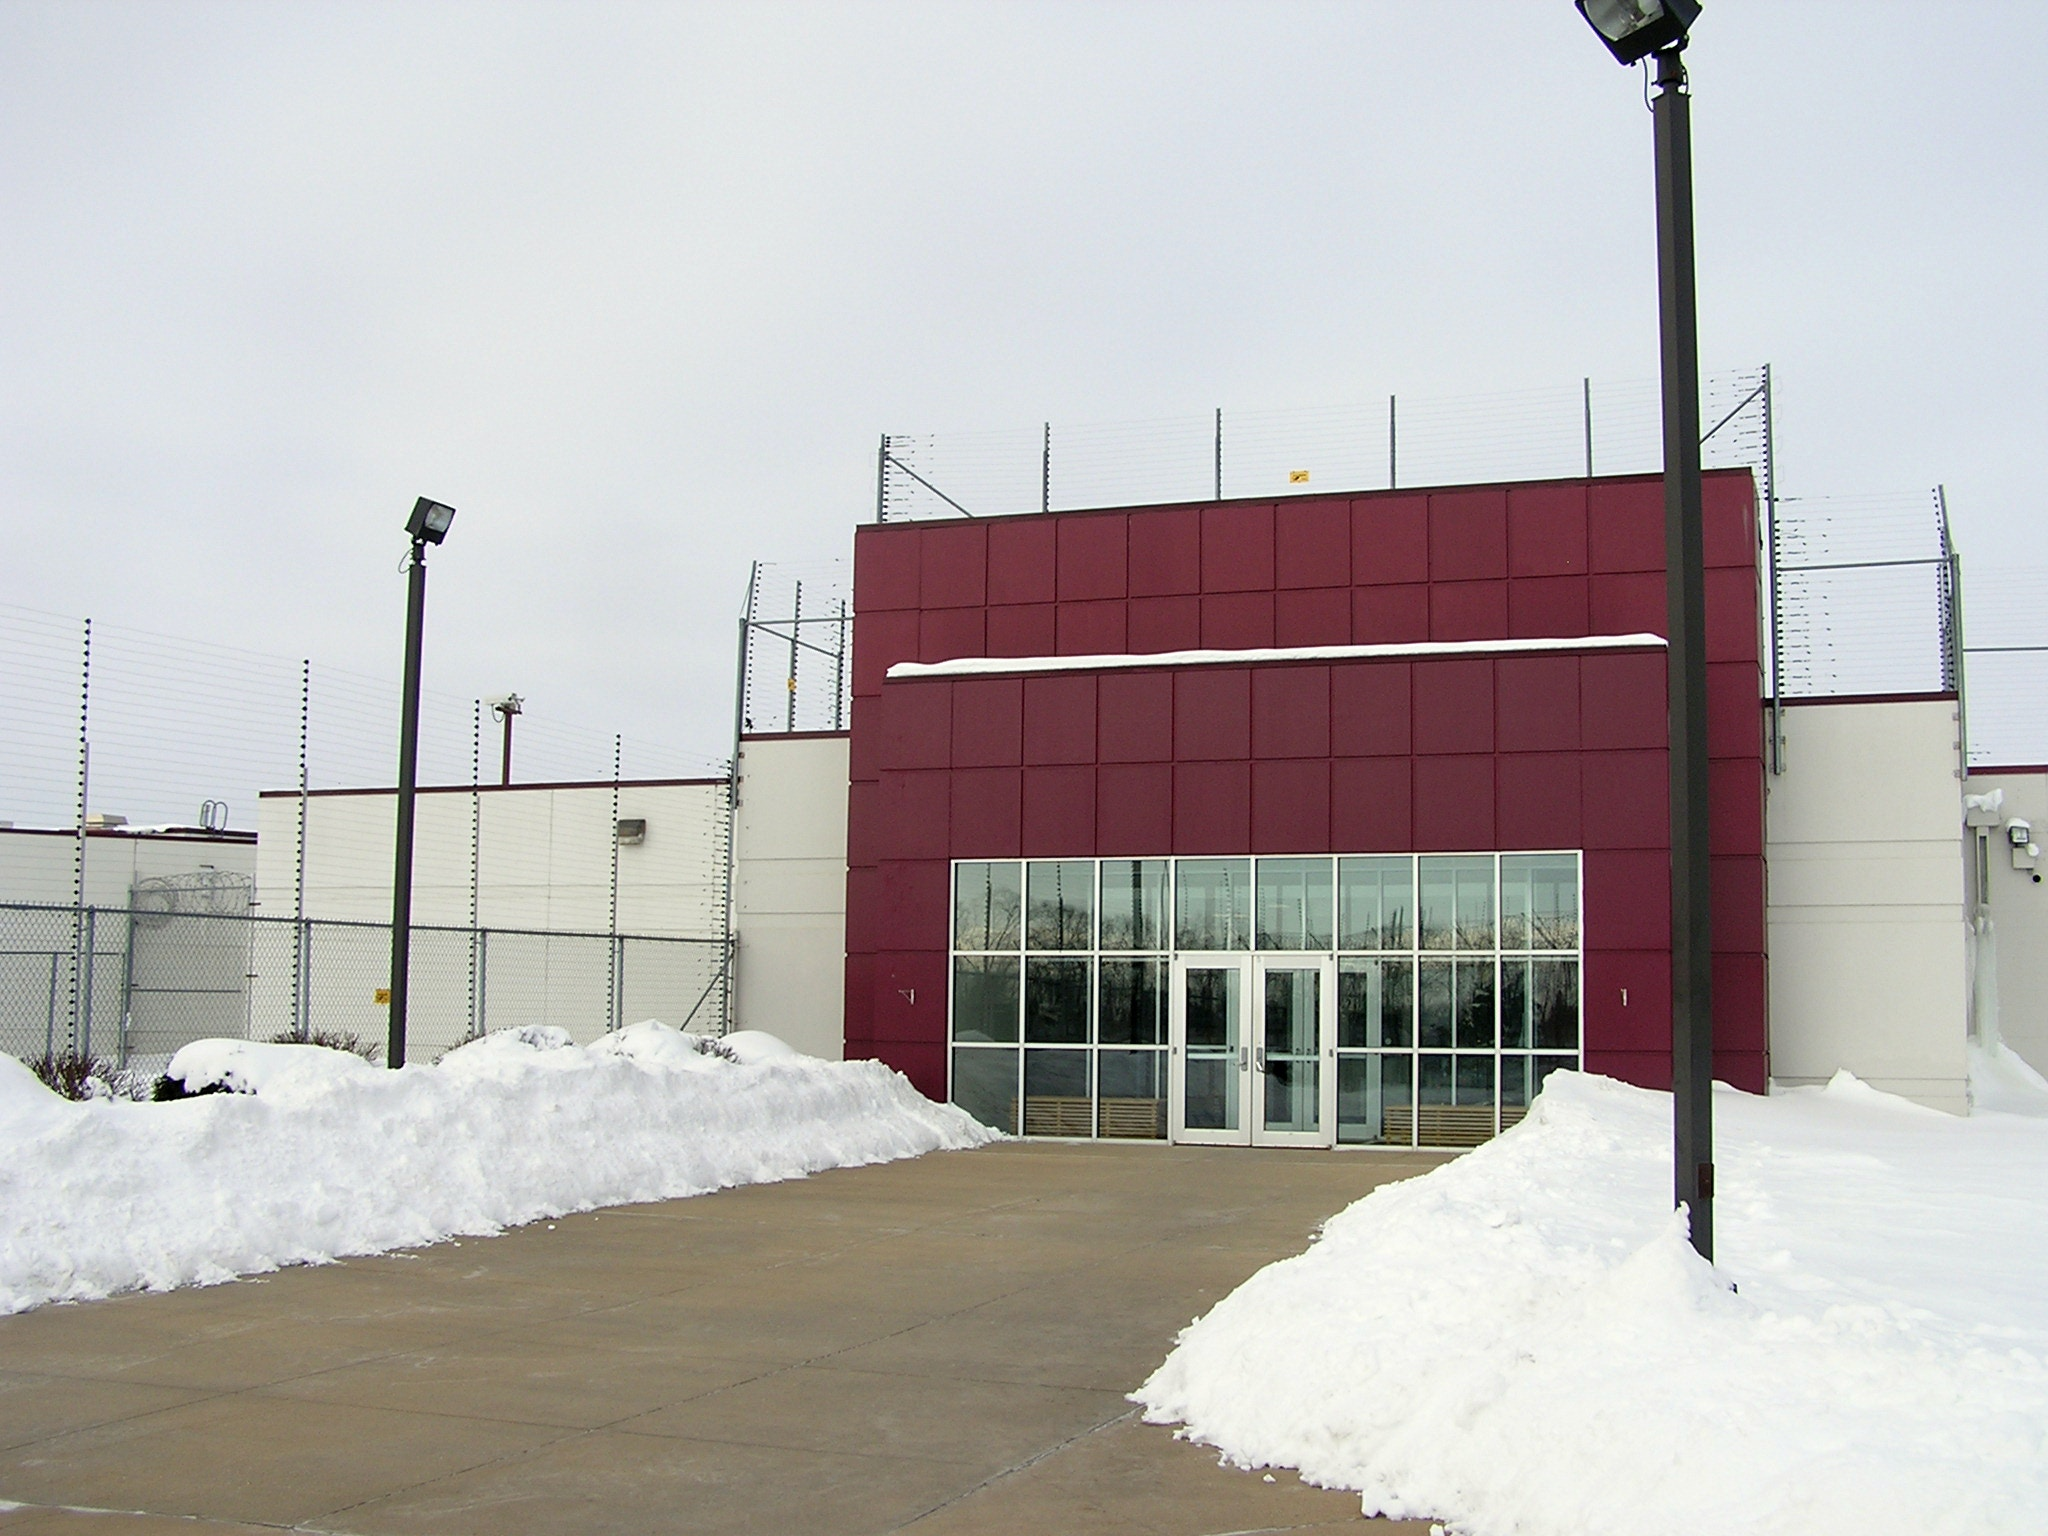 This photo taken Jan. 5, 2010, shows an entrance to the Prairie Correctional Facility, a private prison the closed in February 2010, in Appleton, Minn. State Republicans pushed legislation though a committee on Tuesday, March 26, 2016, to re-open the privately run prison in western Minnesota despite repeated interruptions from protesters who briefly halted debate as they pushed lawmakers to instead consider ways to decrease the state's prison population. (Mark Steil/Minnesota Public Radio via AP) MANDATORY CREDIT